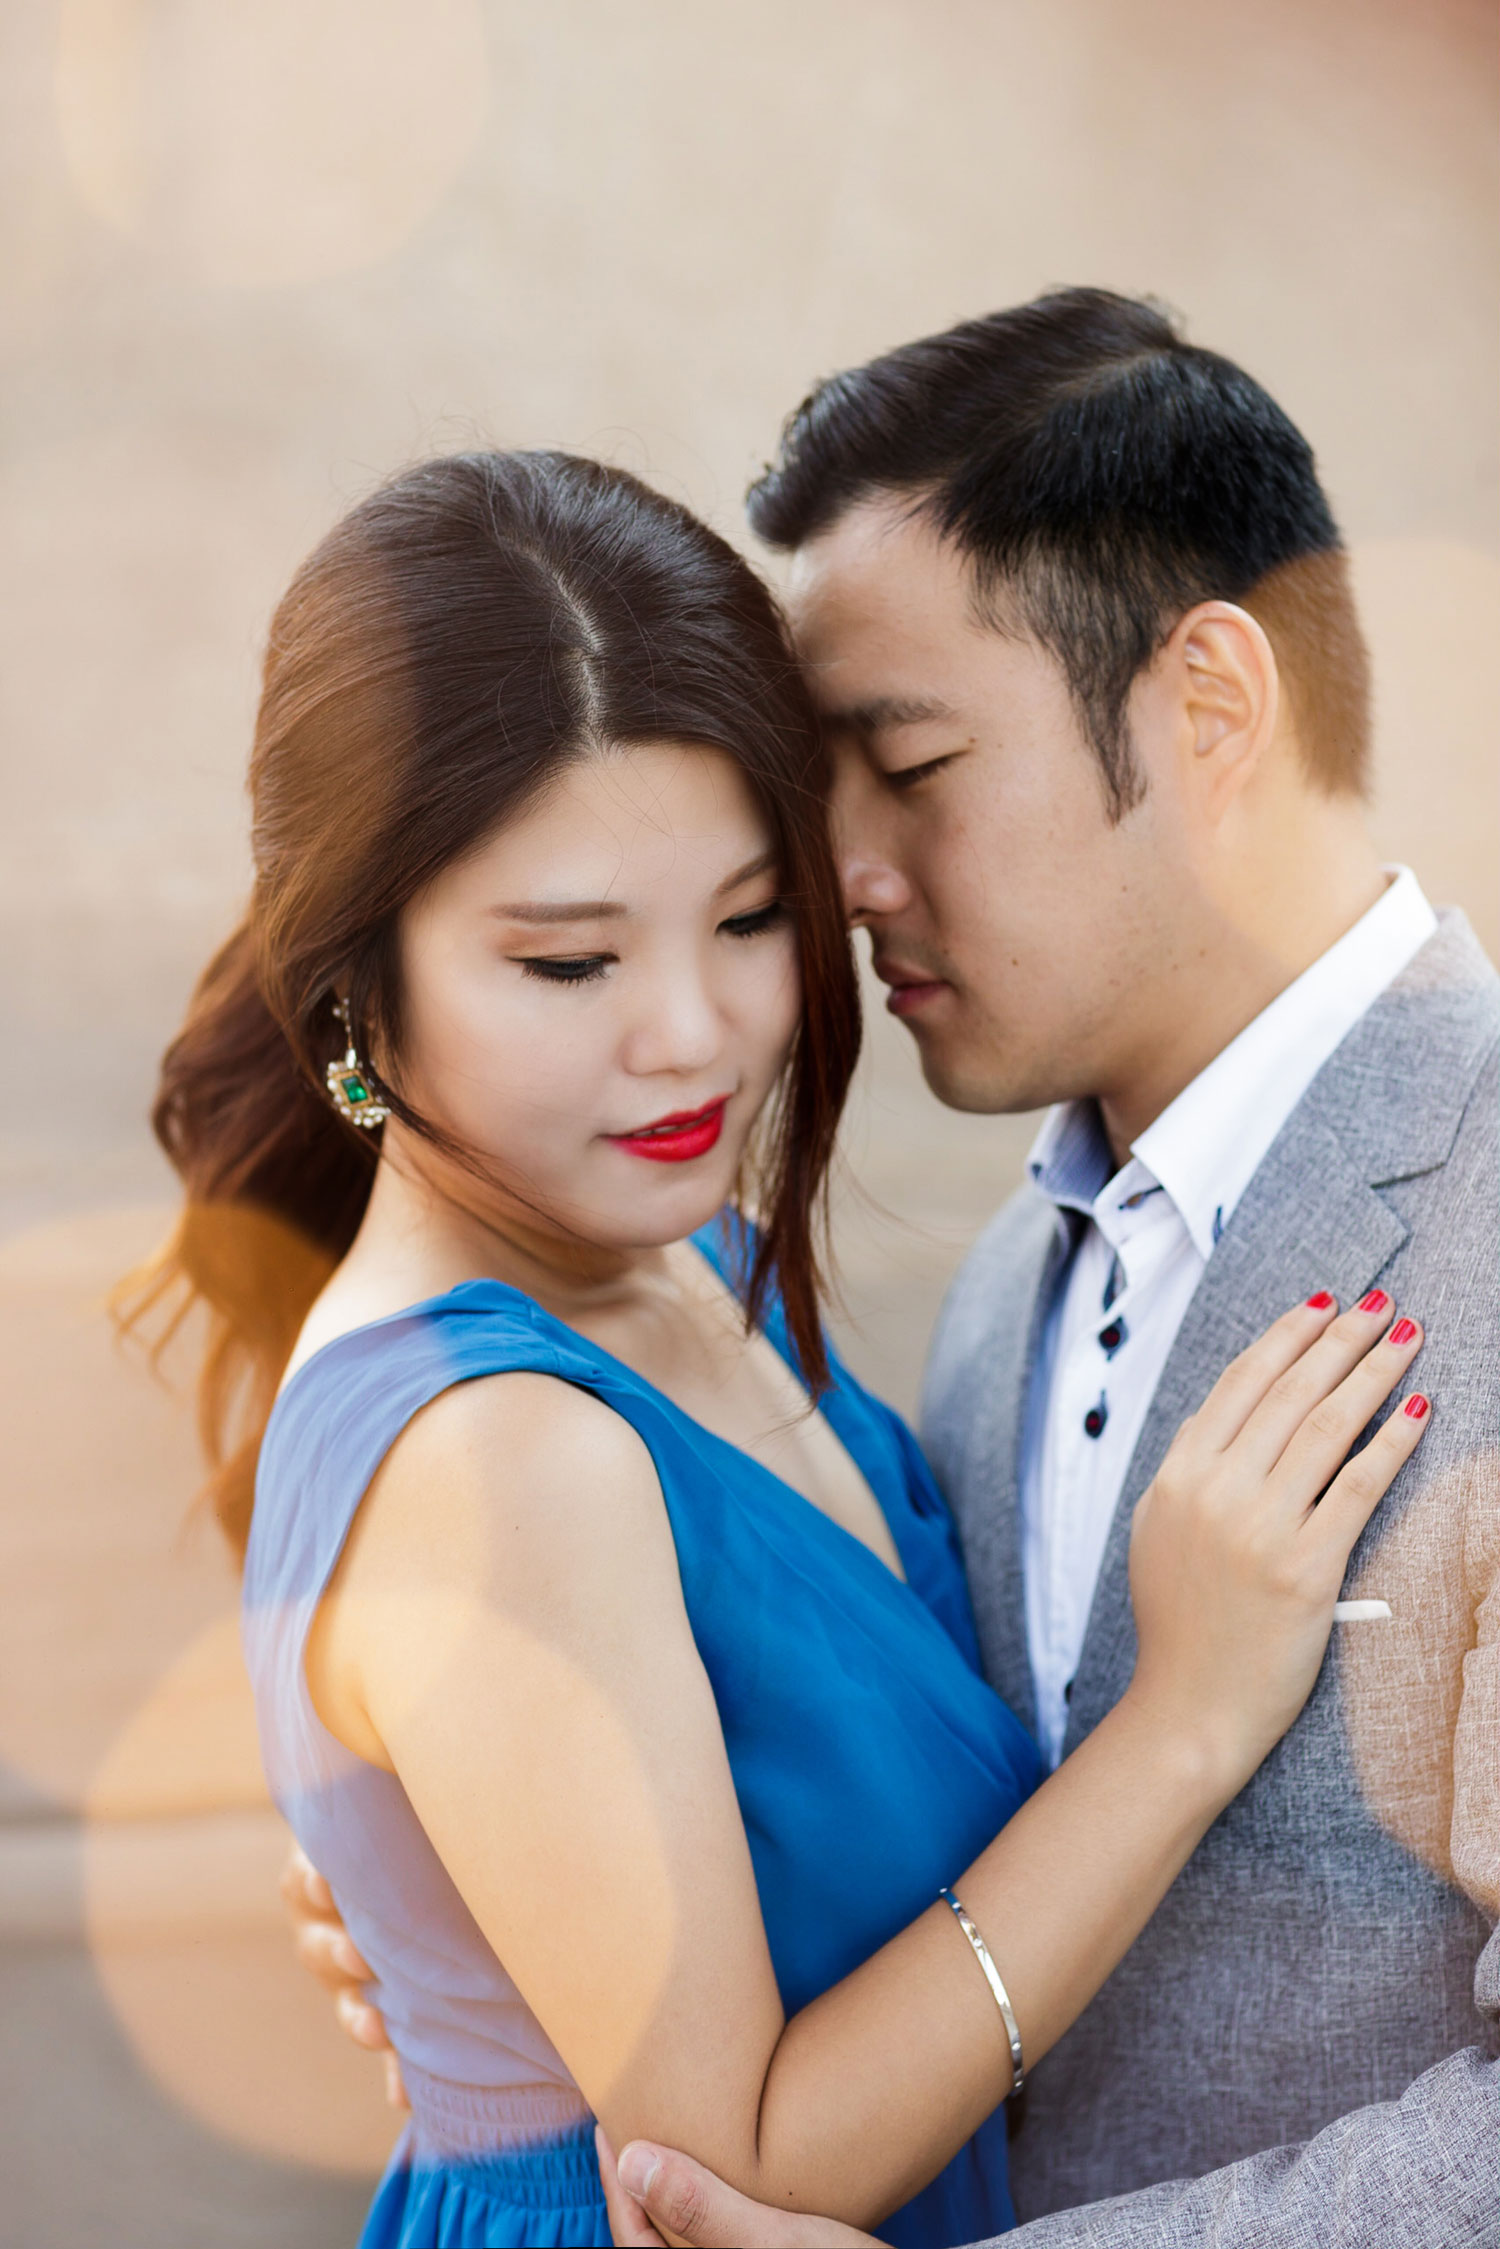 Engagement shoot in Chicago e-session close up bride in blue dress emerald earrings